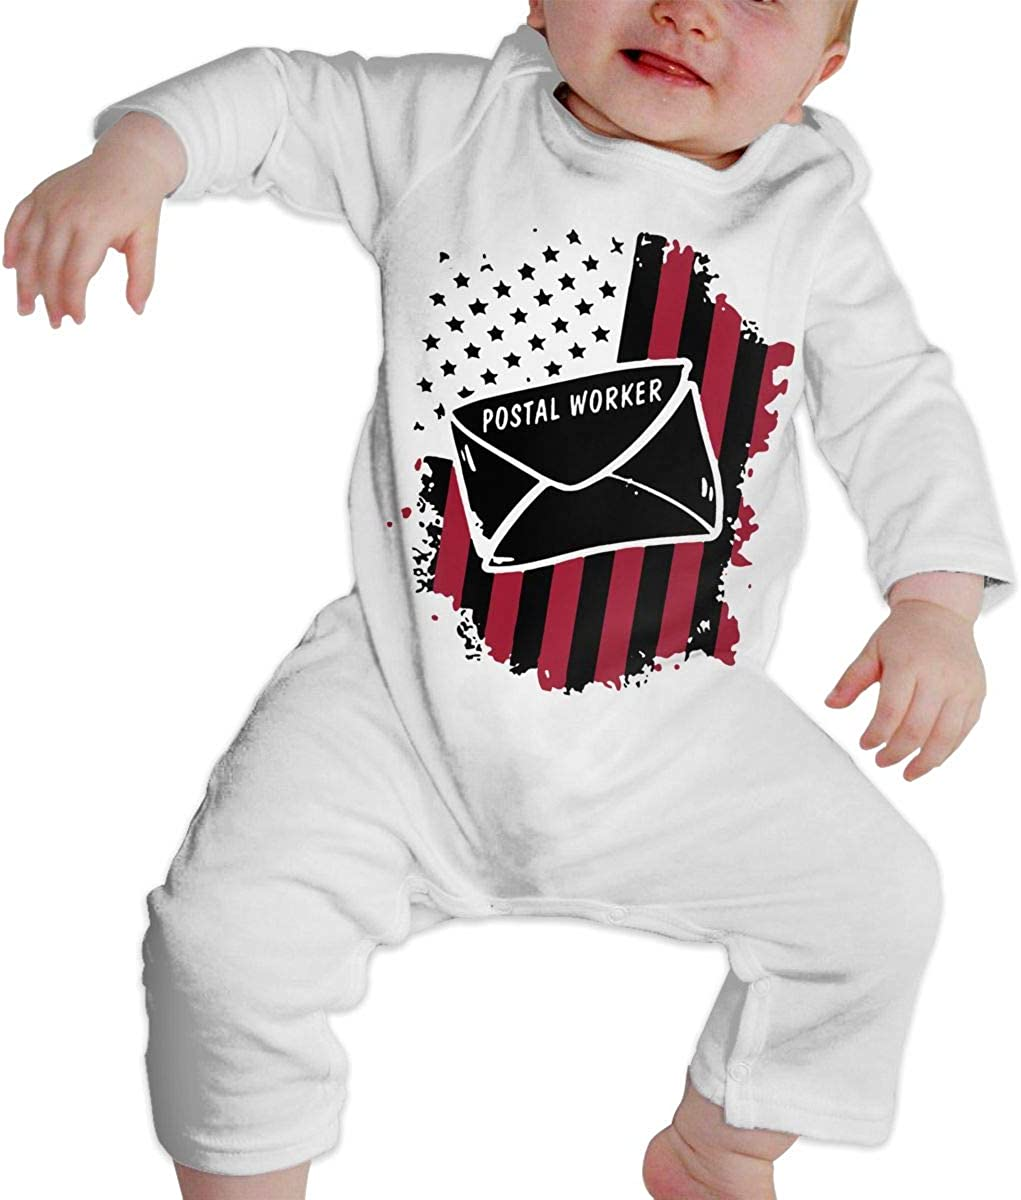 YELTY6F Postal Worker US Flag Printed Boys Girls One-Piece Suit Long Sleeve Outfits White